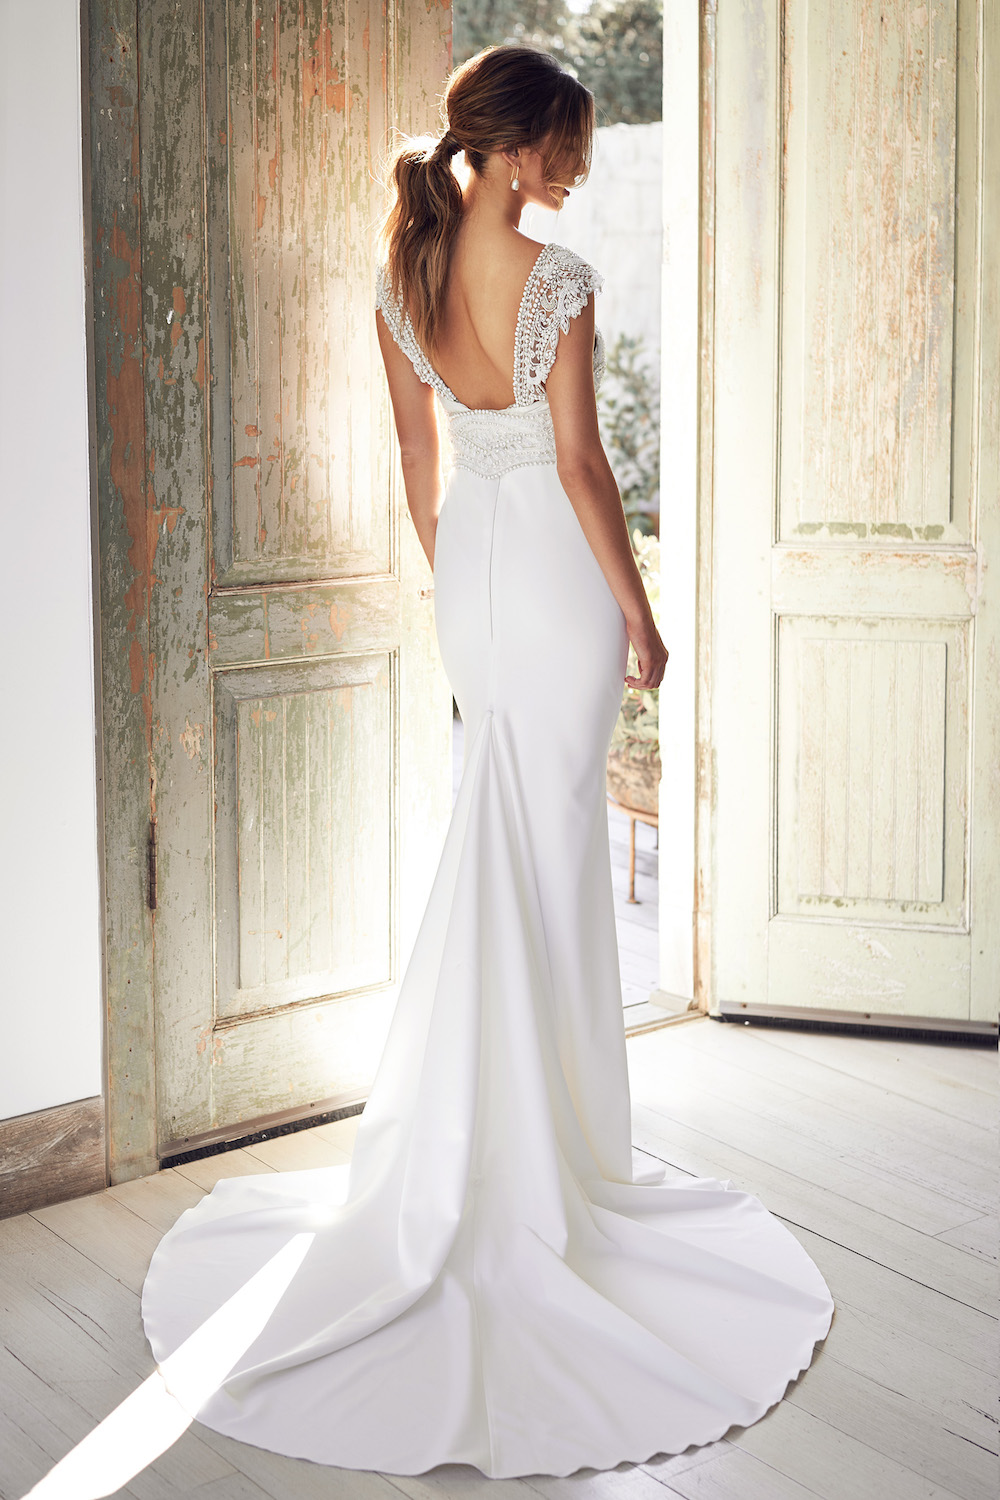 Sorrento Dress in Crepe | Anna Campbell Lumiere Collection | LOVE FIND CO. Bridal Directory